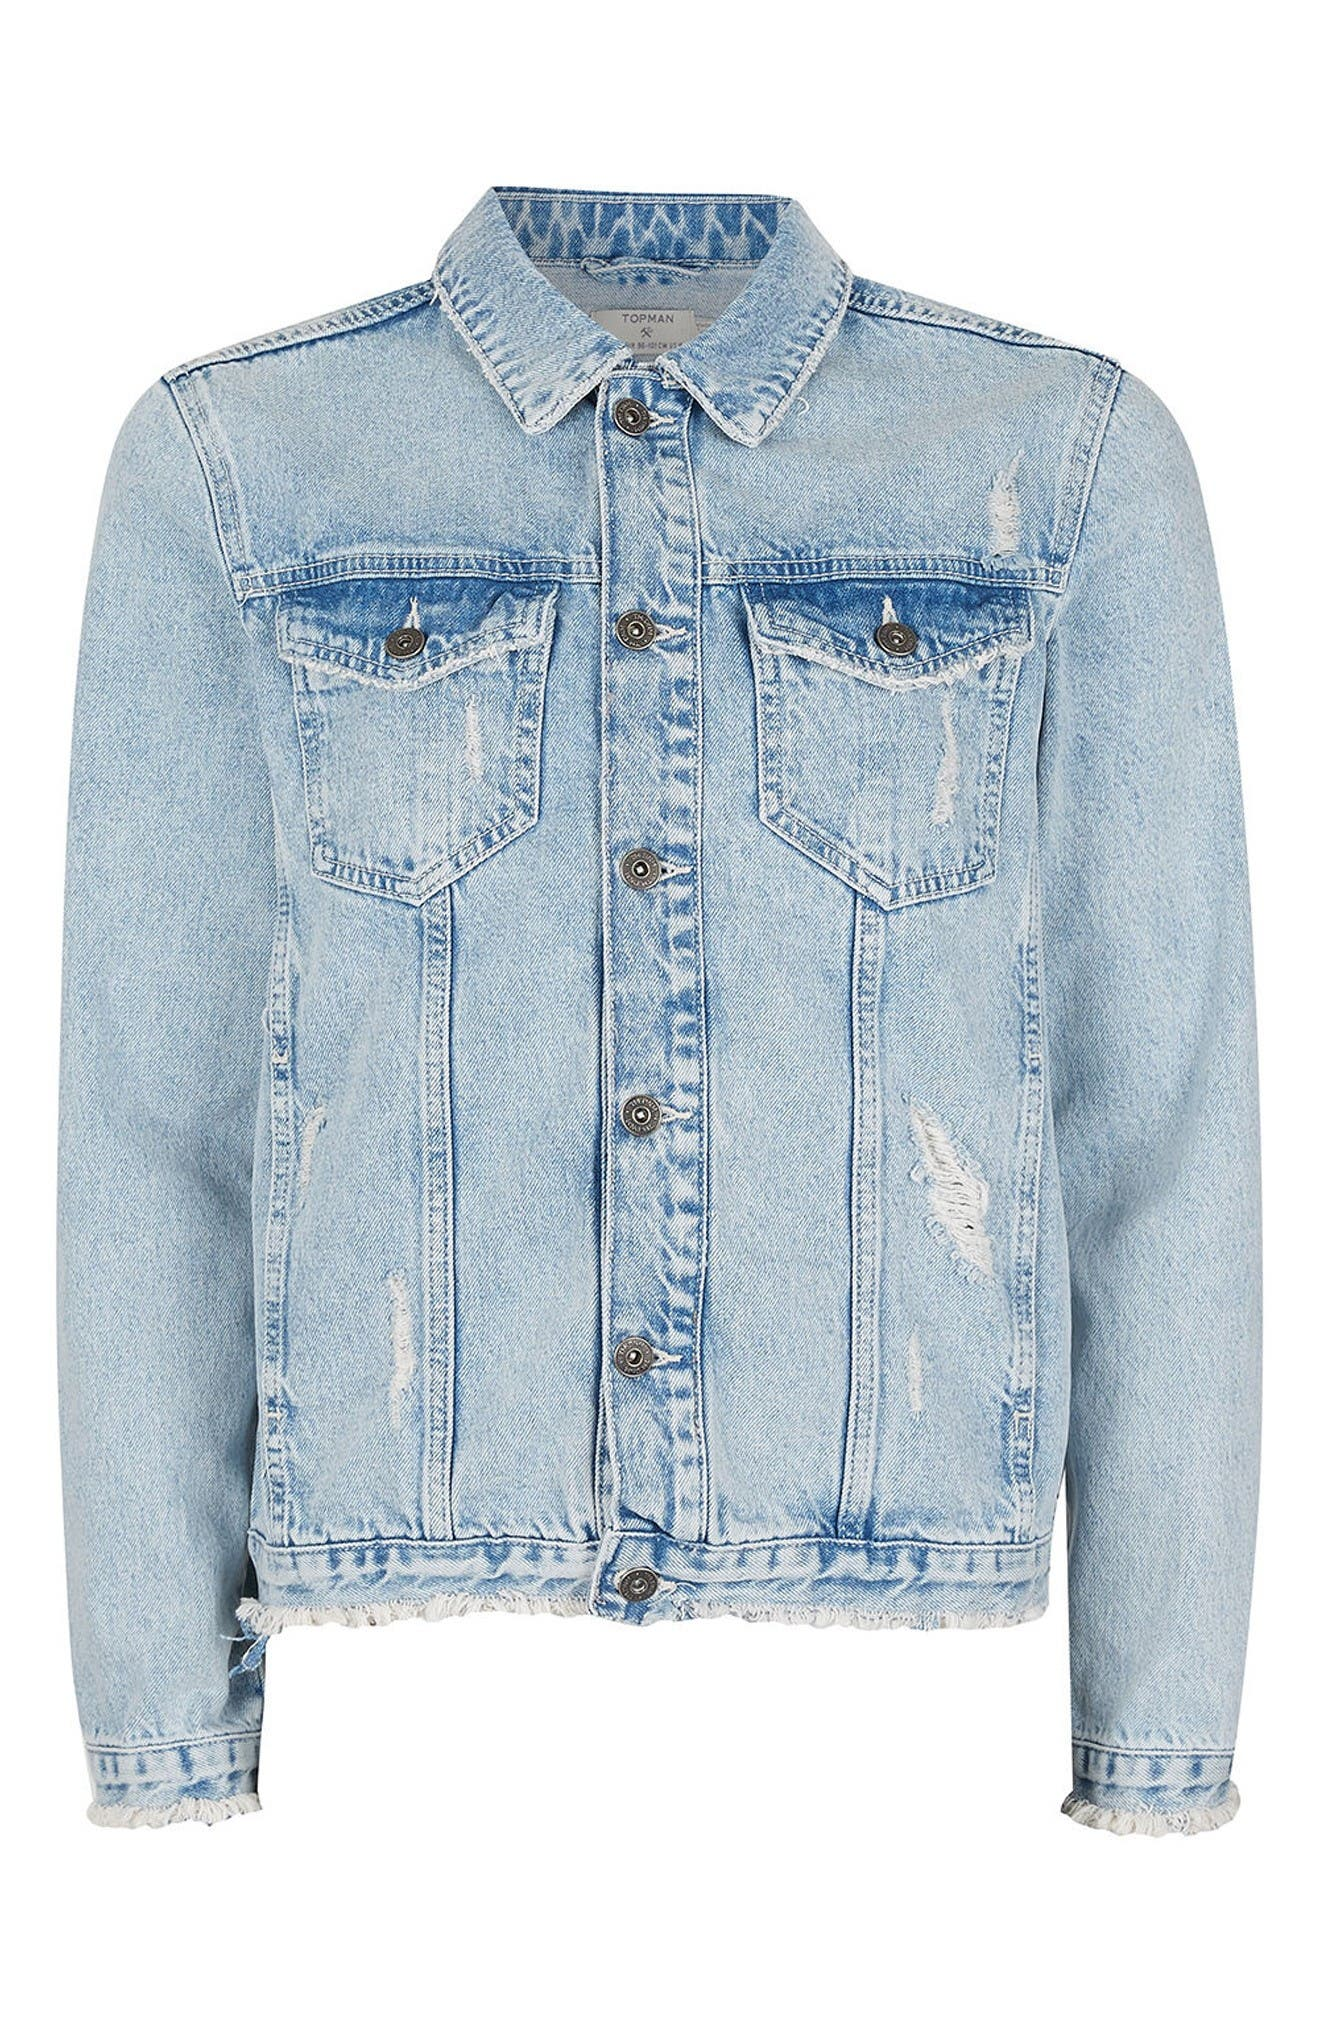 Distressed Denim Jacket,                             Alternate thumbnail 5, color,                             Blue